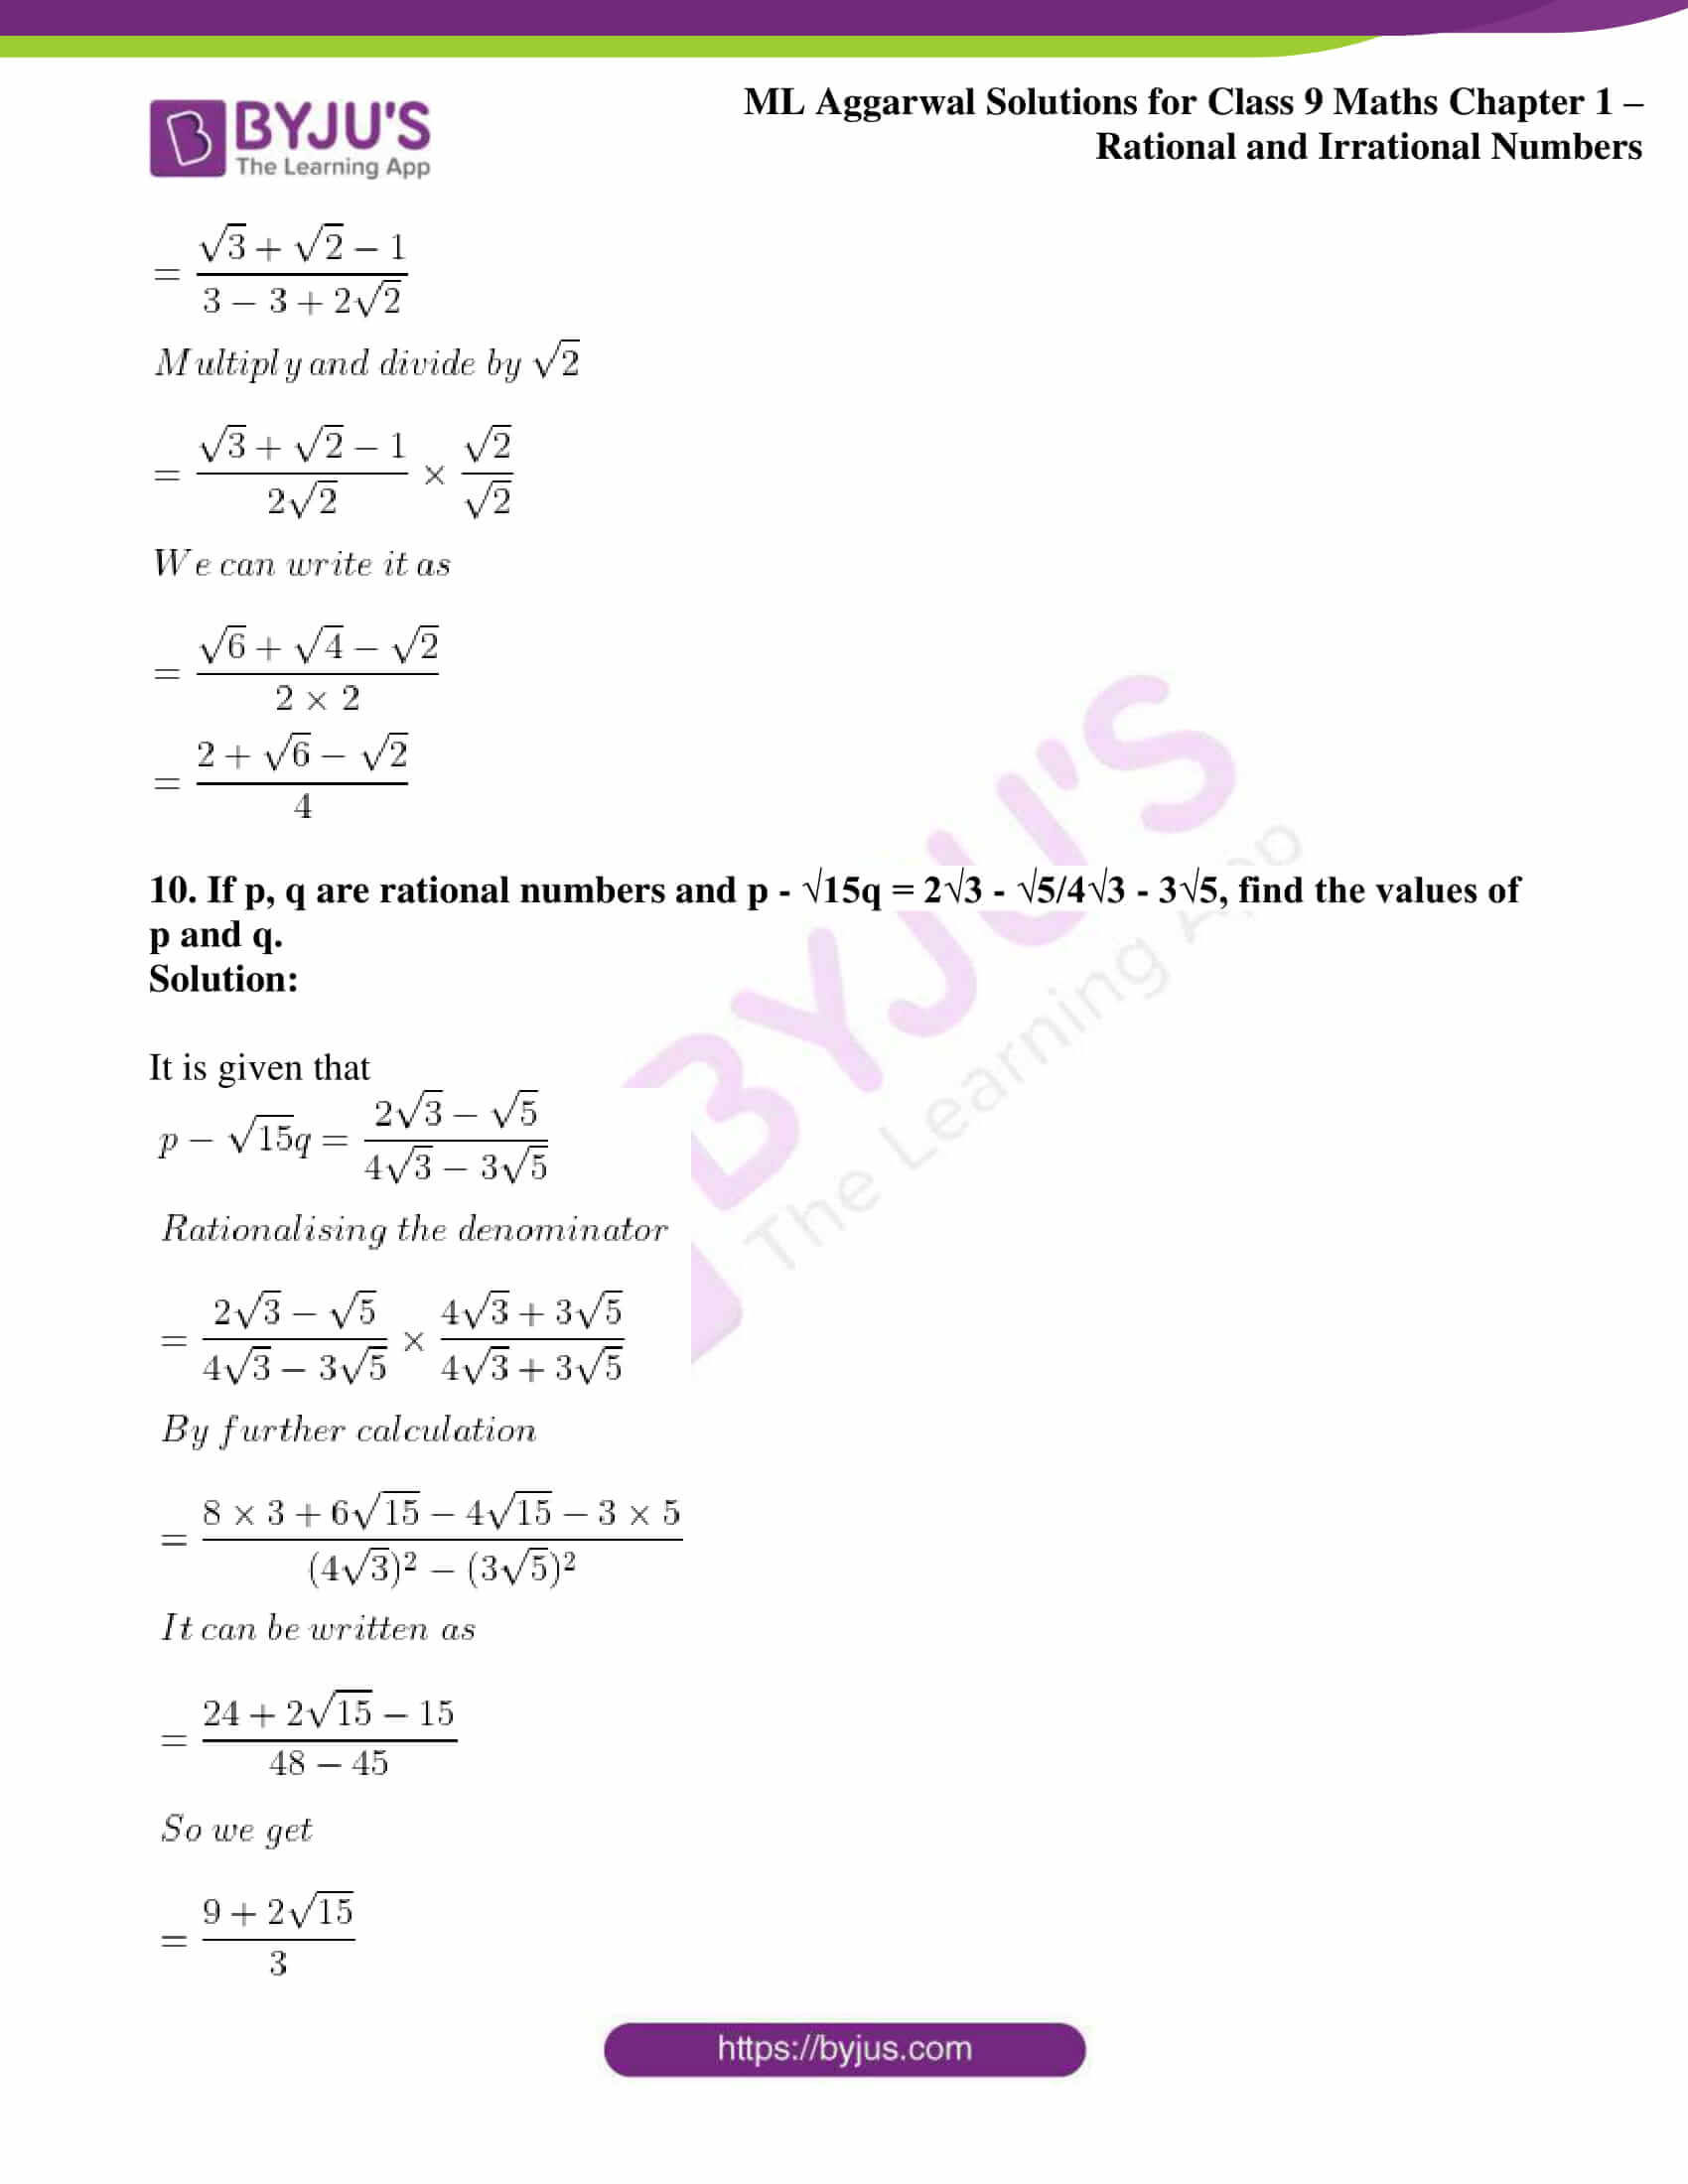 ml aggarwal solutions for class 9 maths chapter 1 72